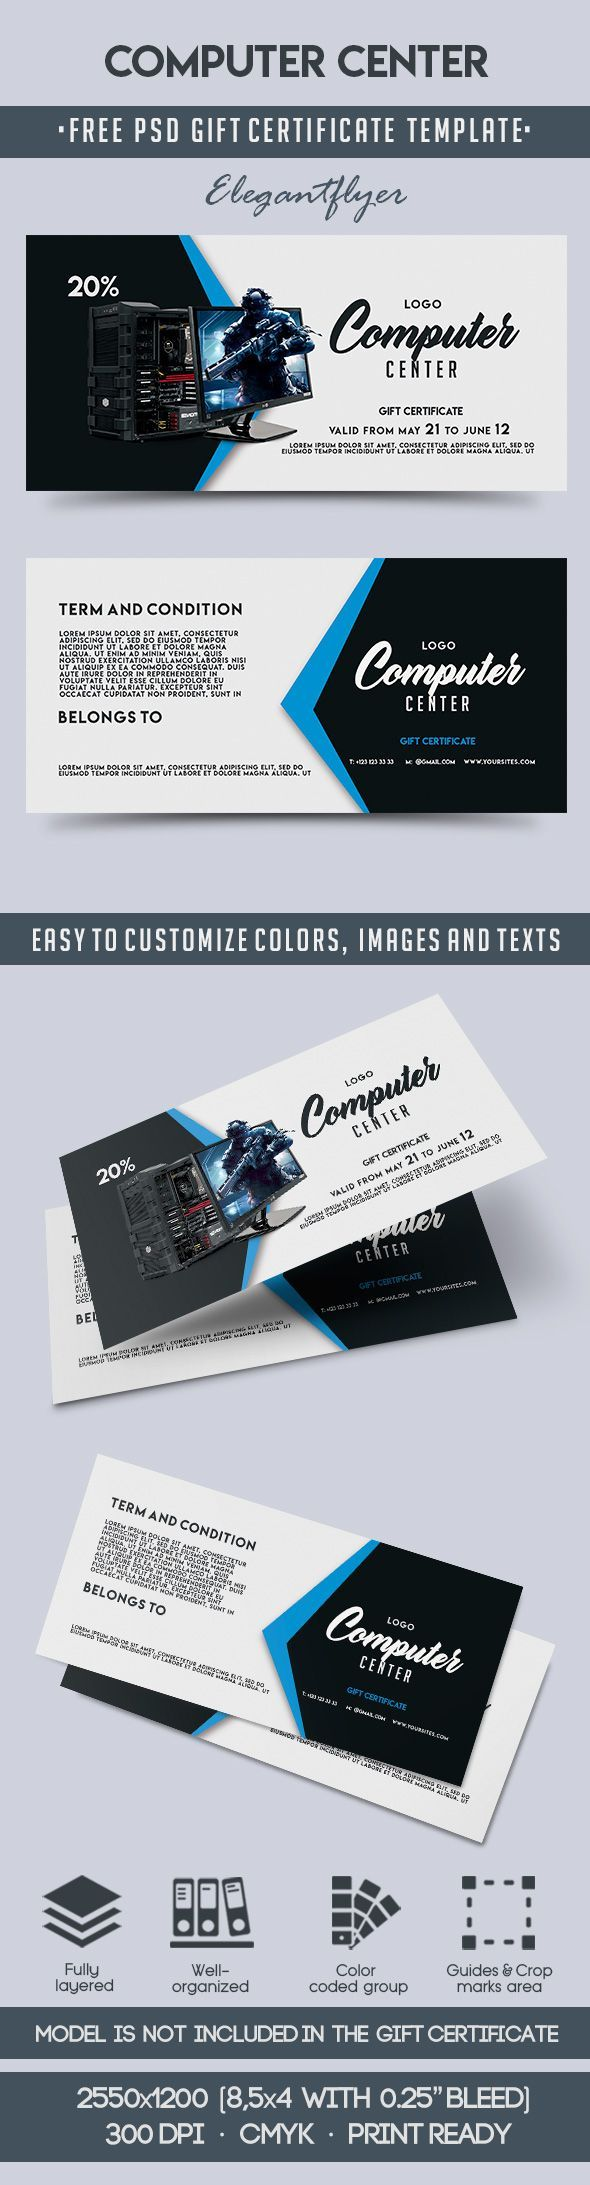 Computer center gift certificate template psd templates gift computer center gift certificate template psd templates gift certificates and certificate yelopaper Gallery